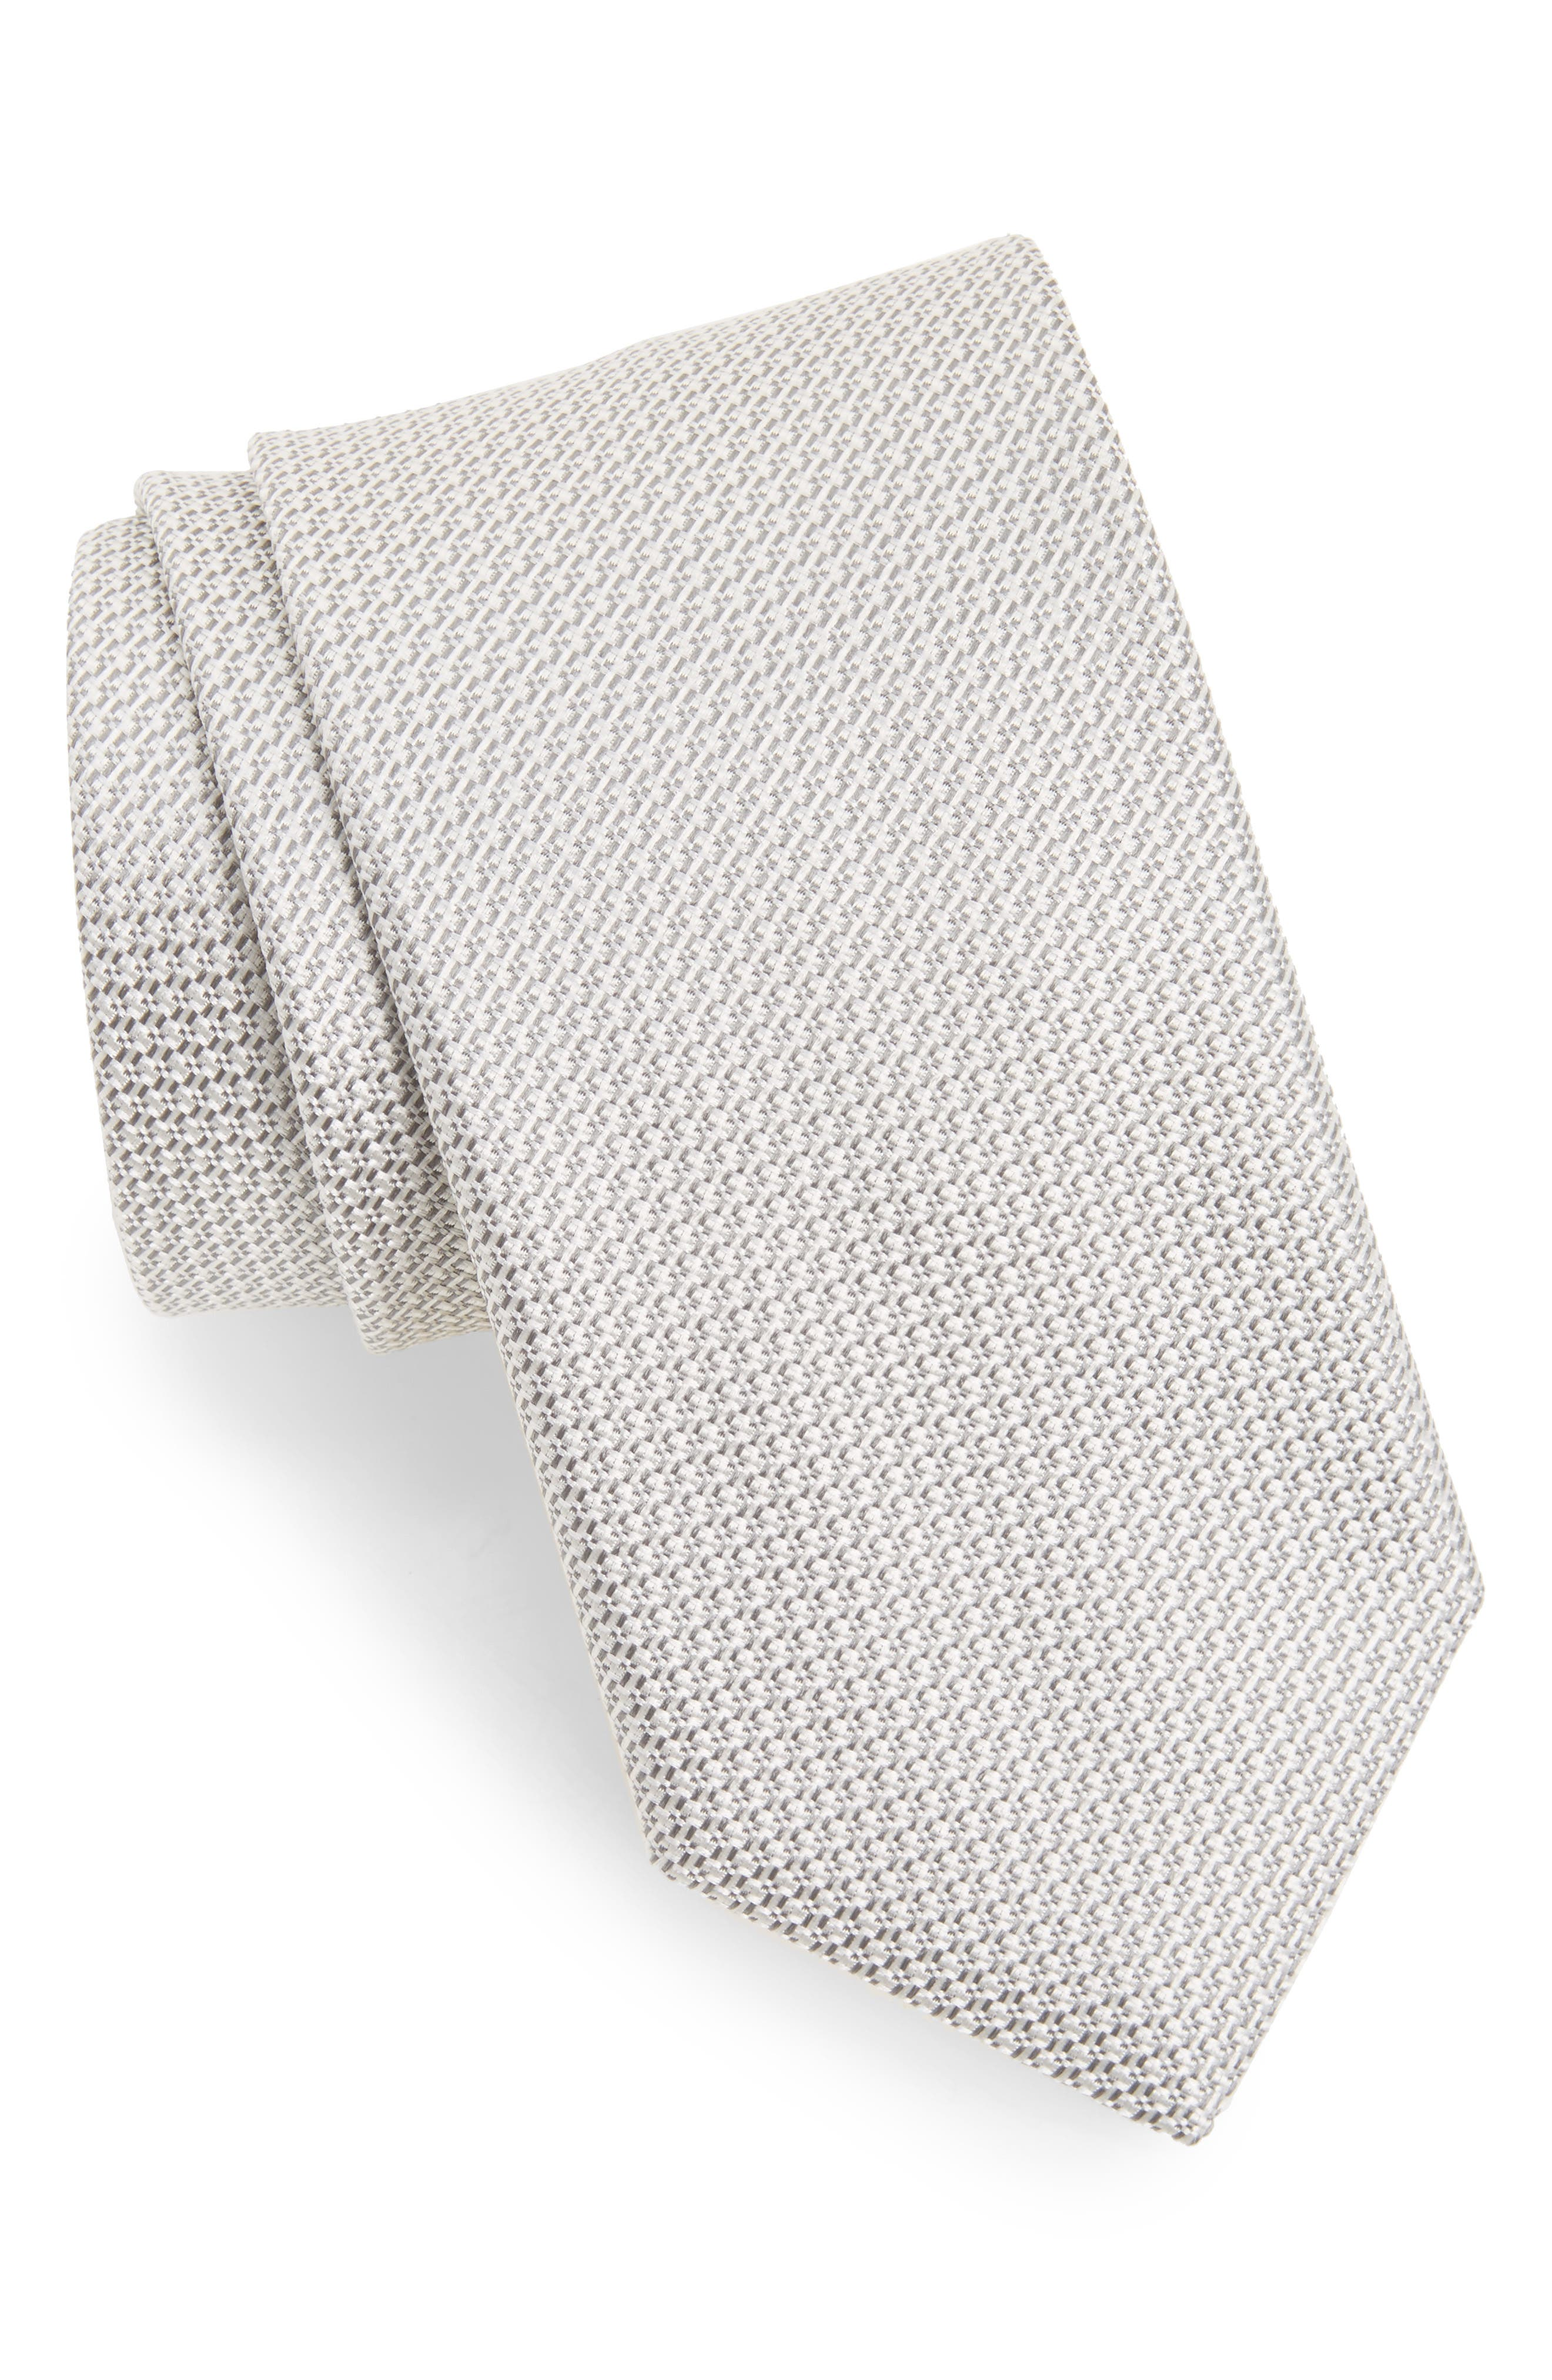 Solid Silk Tie,                             Main thumbnail 1, color,                             039